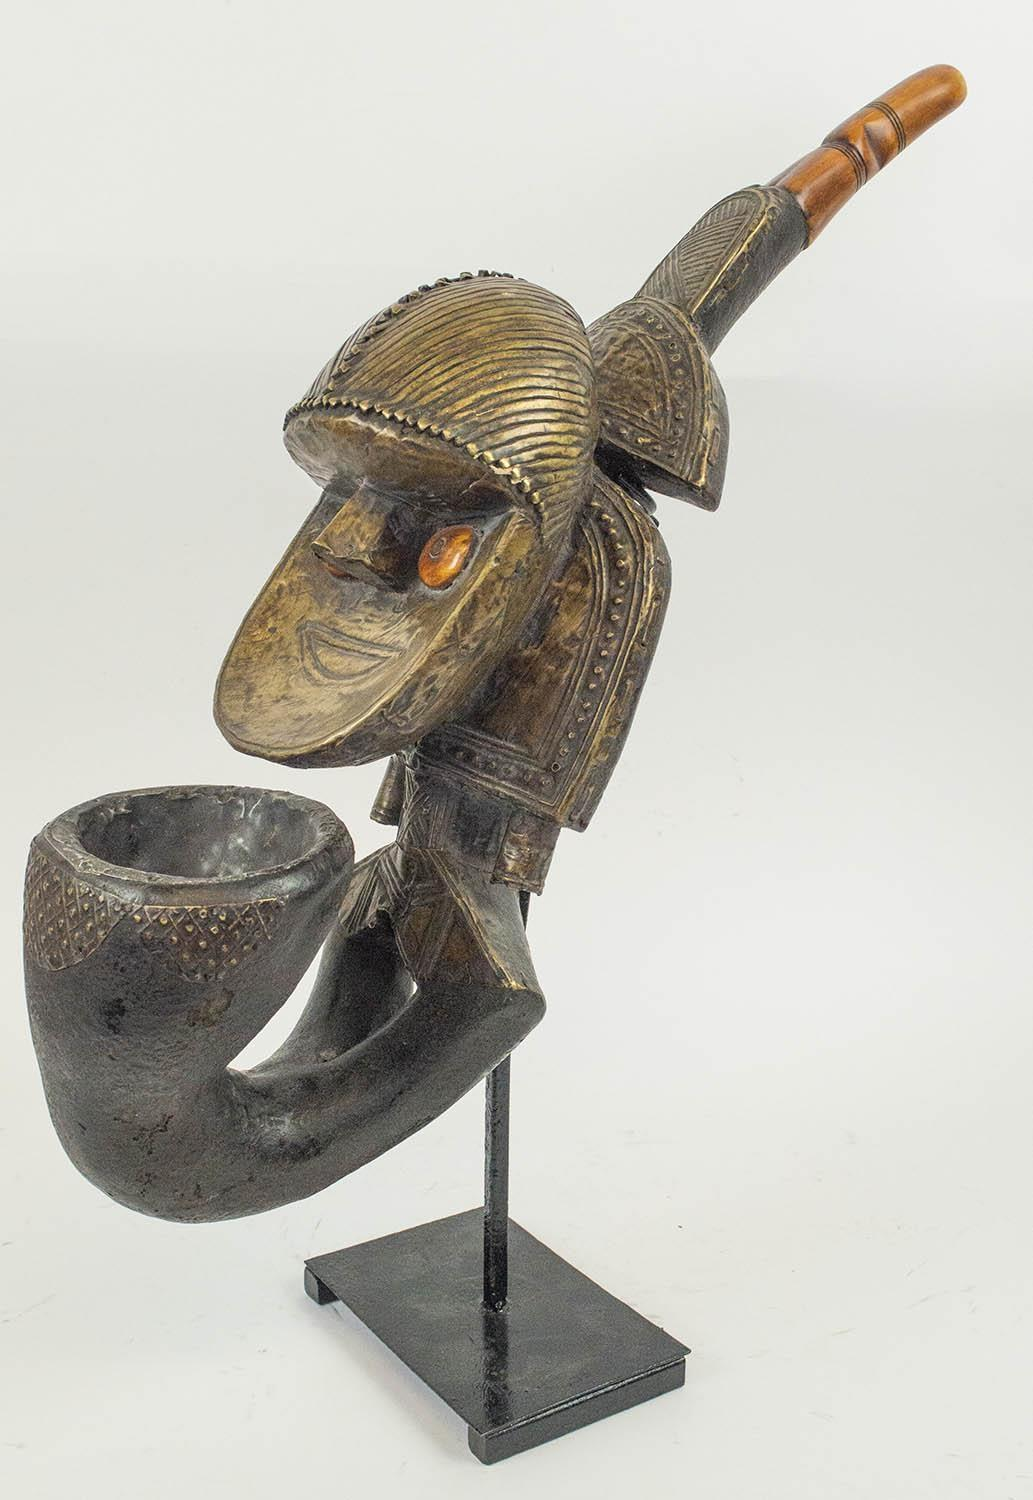 KOBA PEOPLE'S PIPE, from Gabon, copper and carved wood, 55cm H. - Image 2 of 4